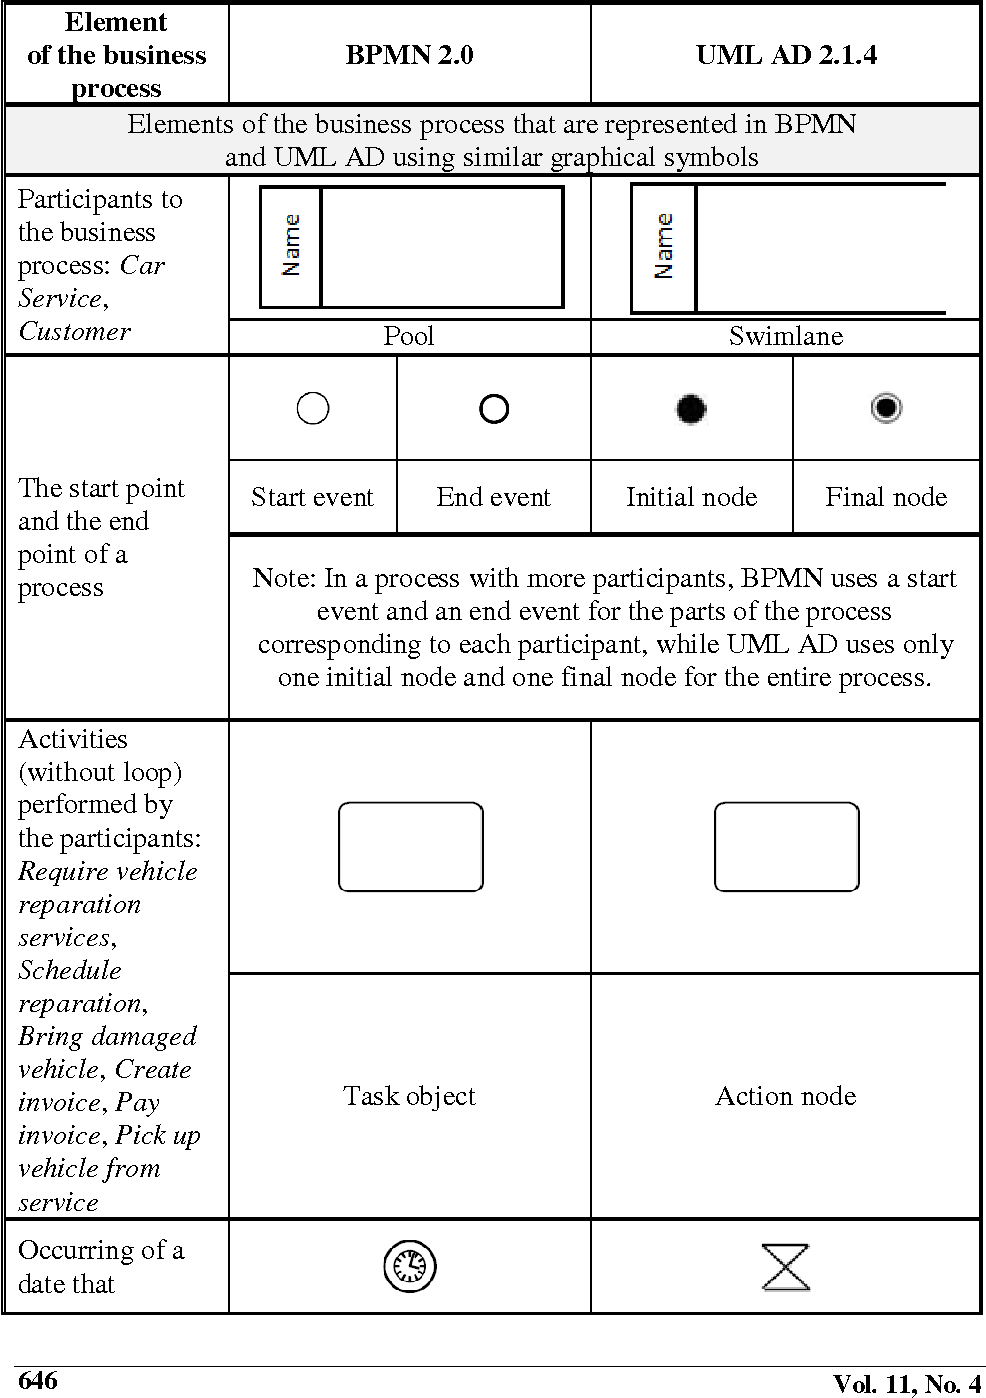 Table 1 From Bpmn Vs Uml Activity Diagram For Business Process Modeling Semantic Scholar